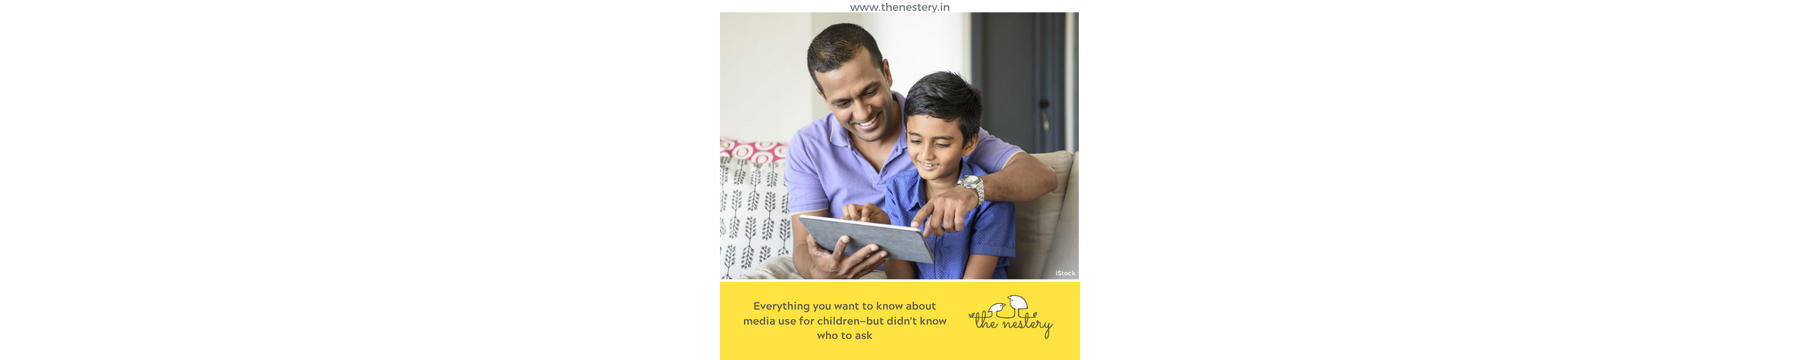 Everything you want to know about media use for children—but didn't know who to ask